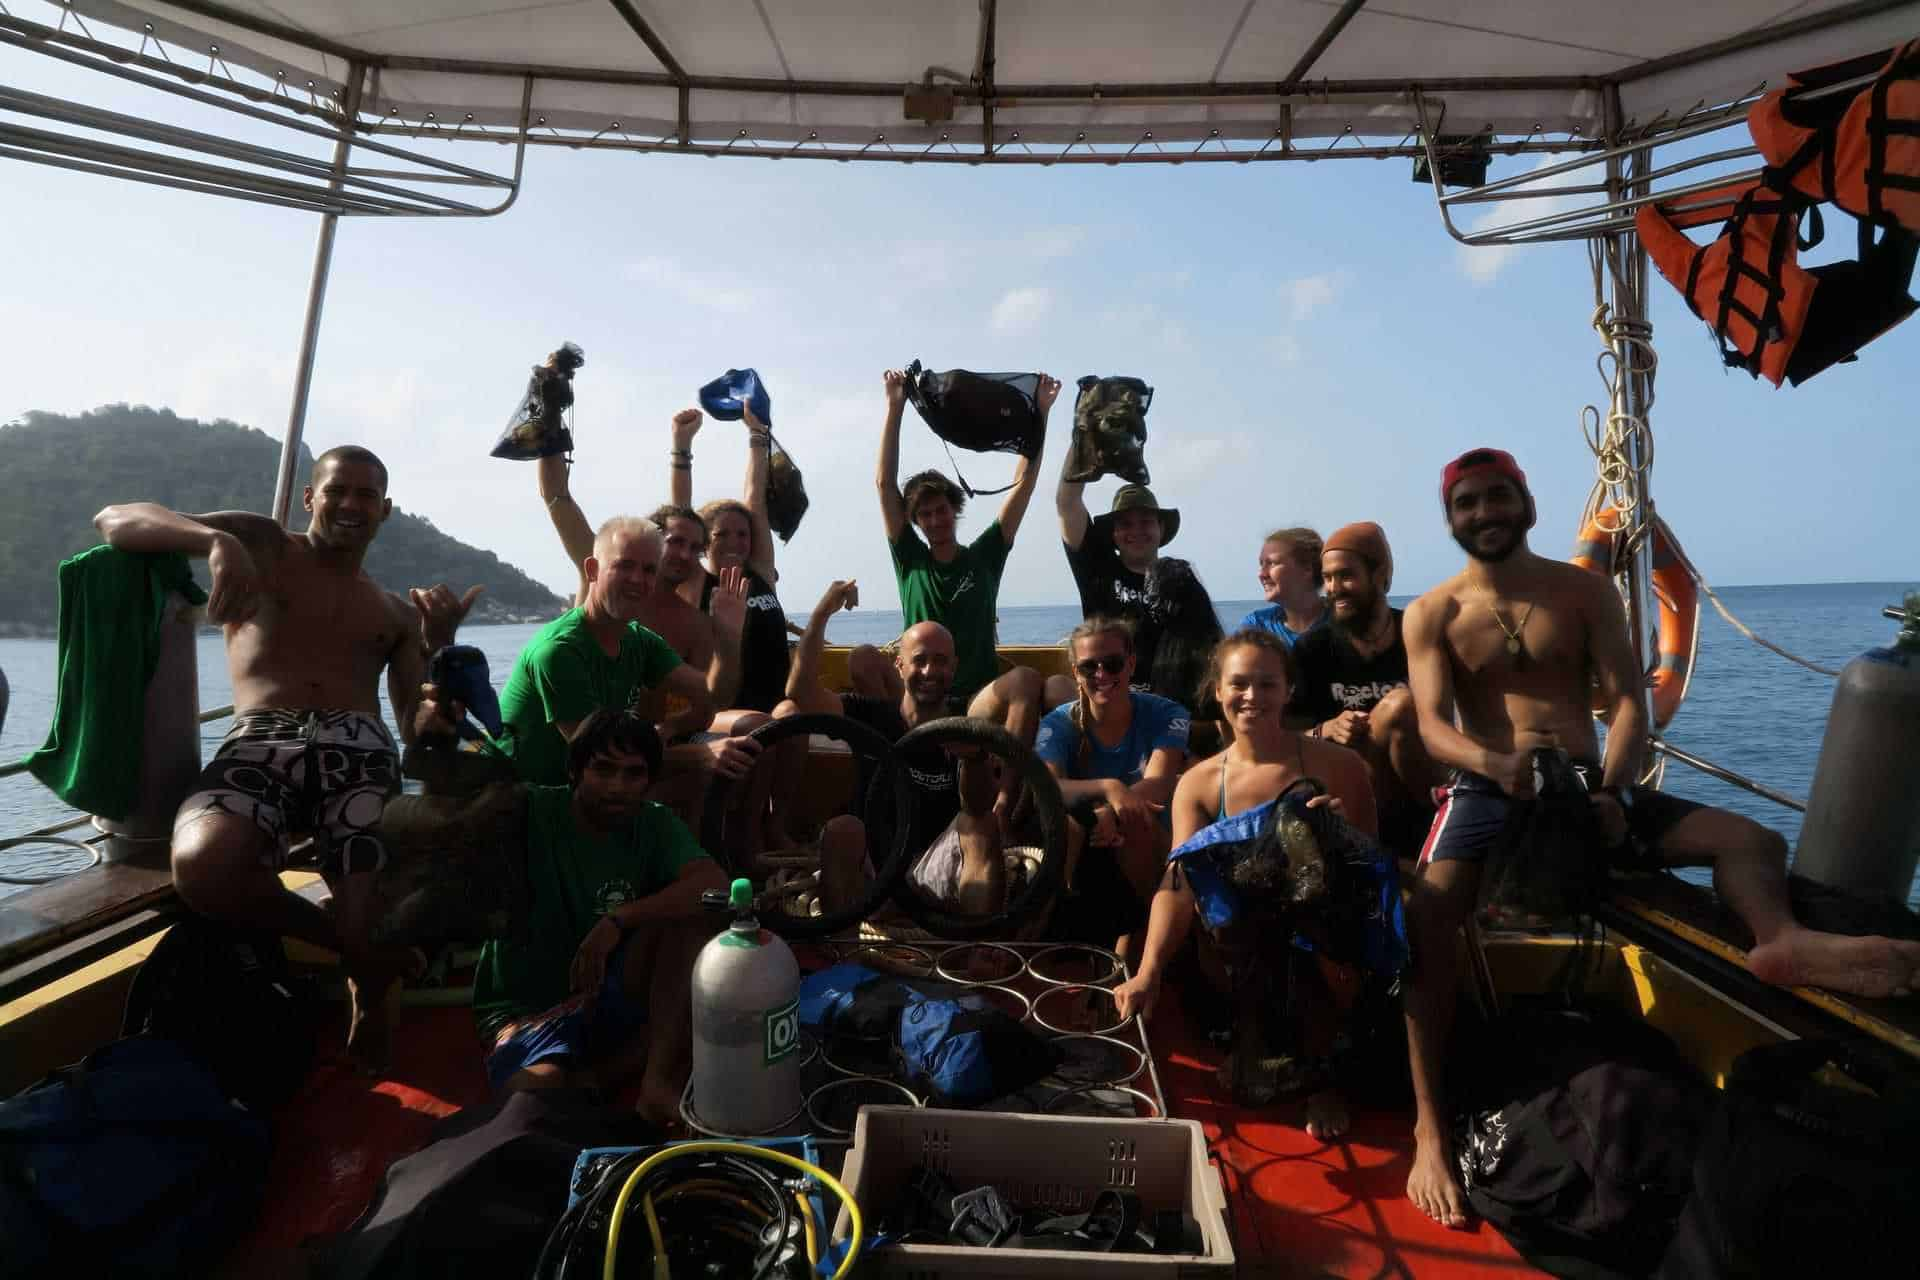 How to choose the dive center koh tao scuba diving koh tao thailand diving course - Koh tao dive center ...